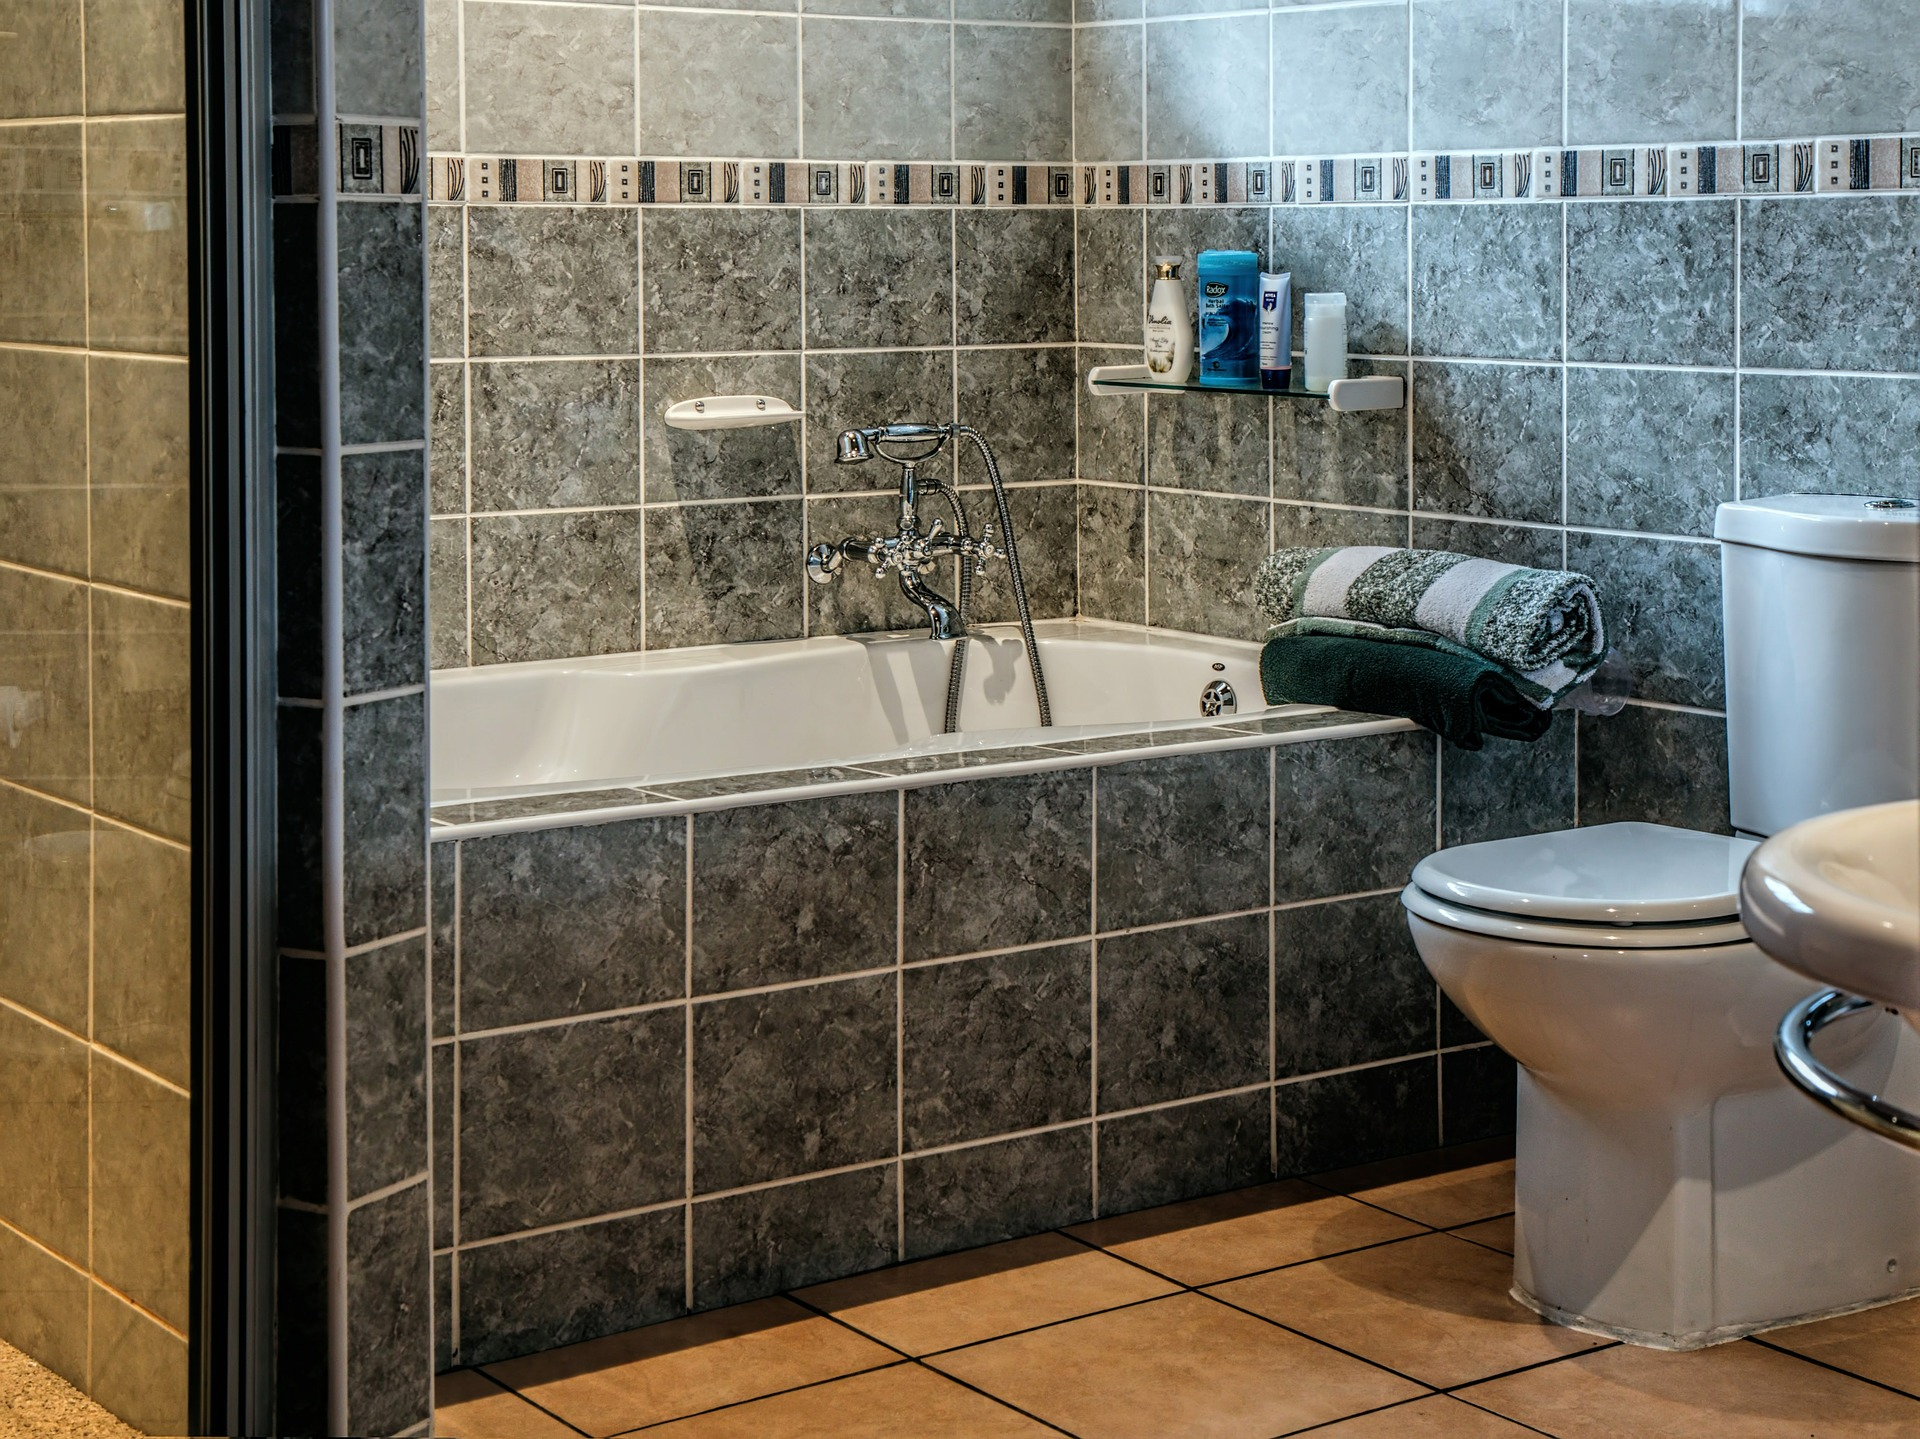 . 10 Small Bathroom Ideas That Will Change Your Life